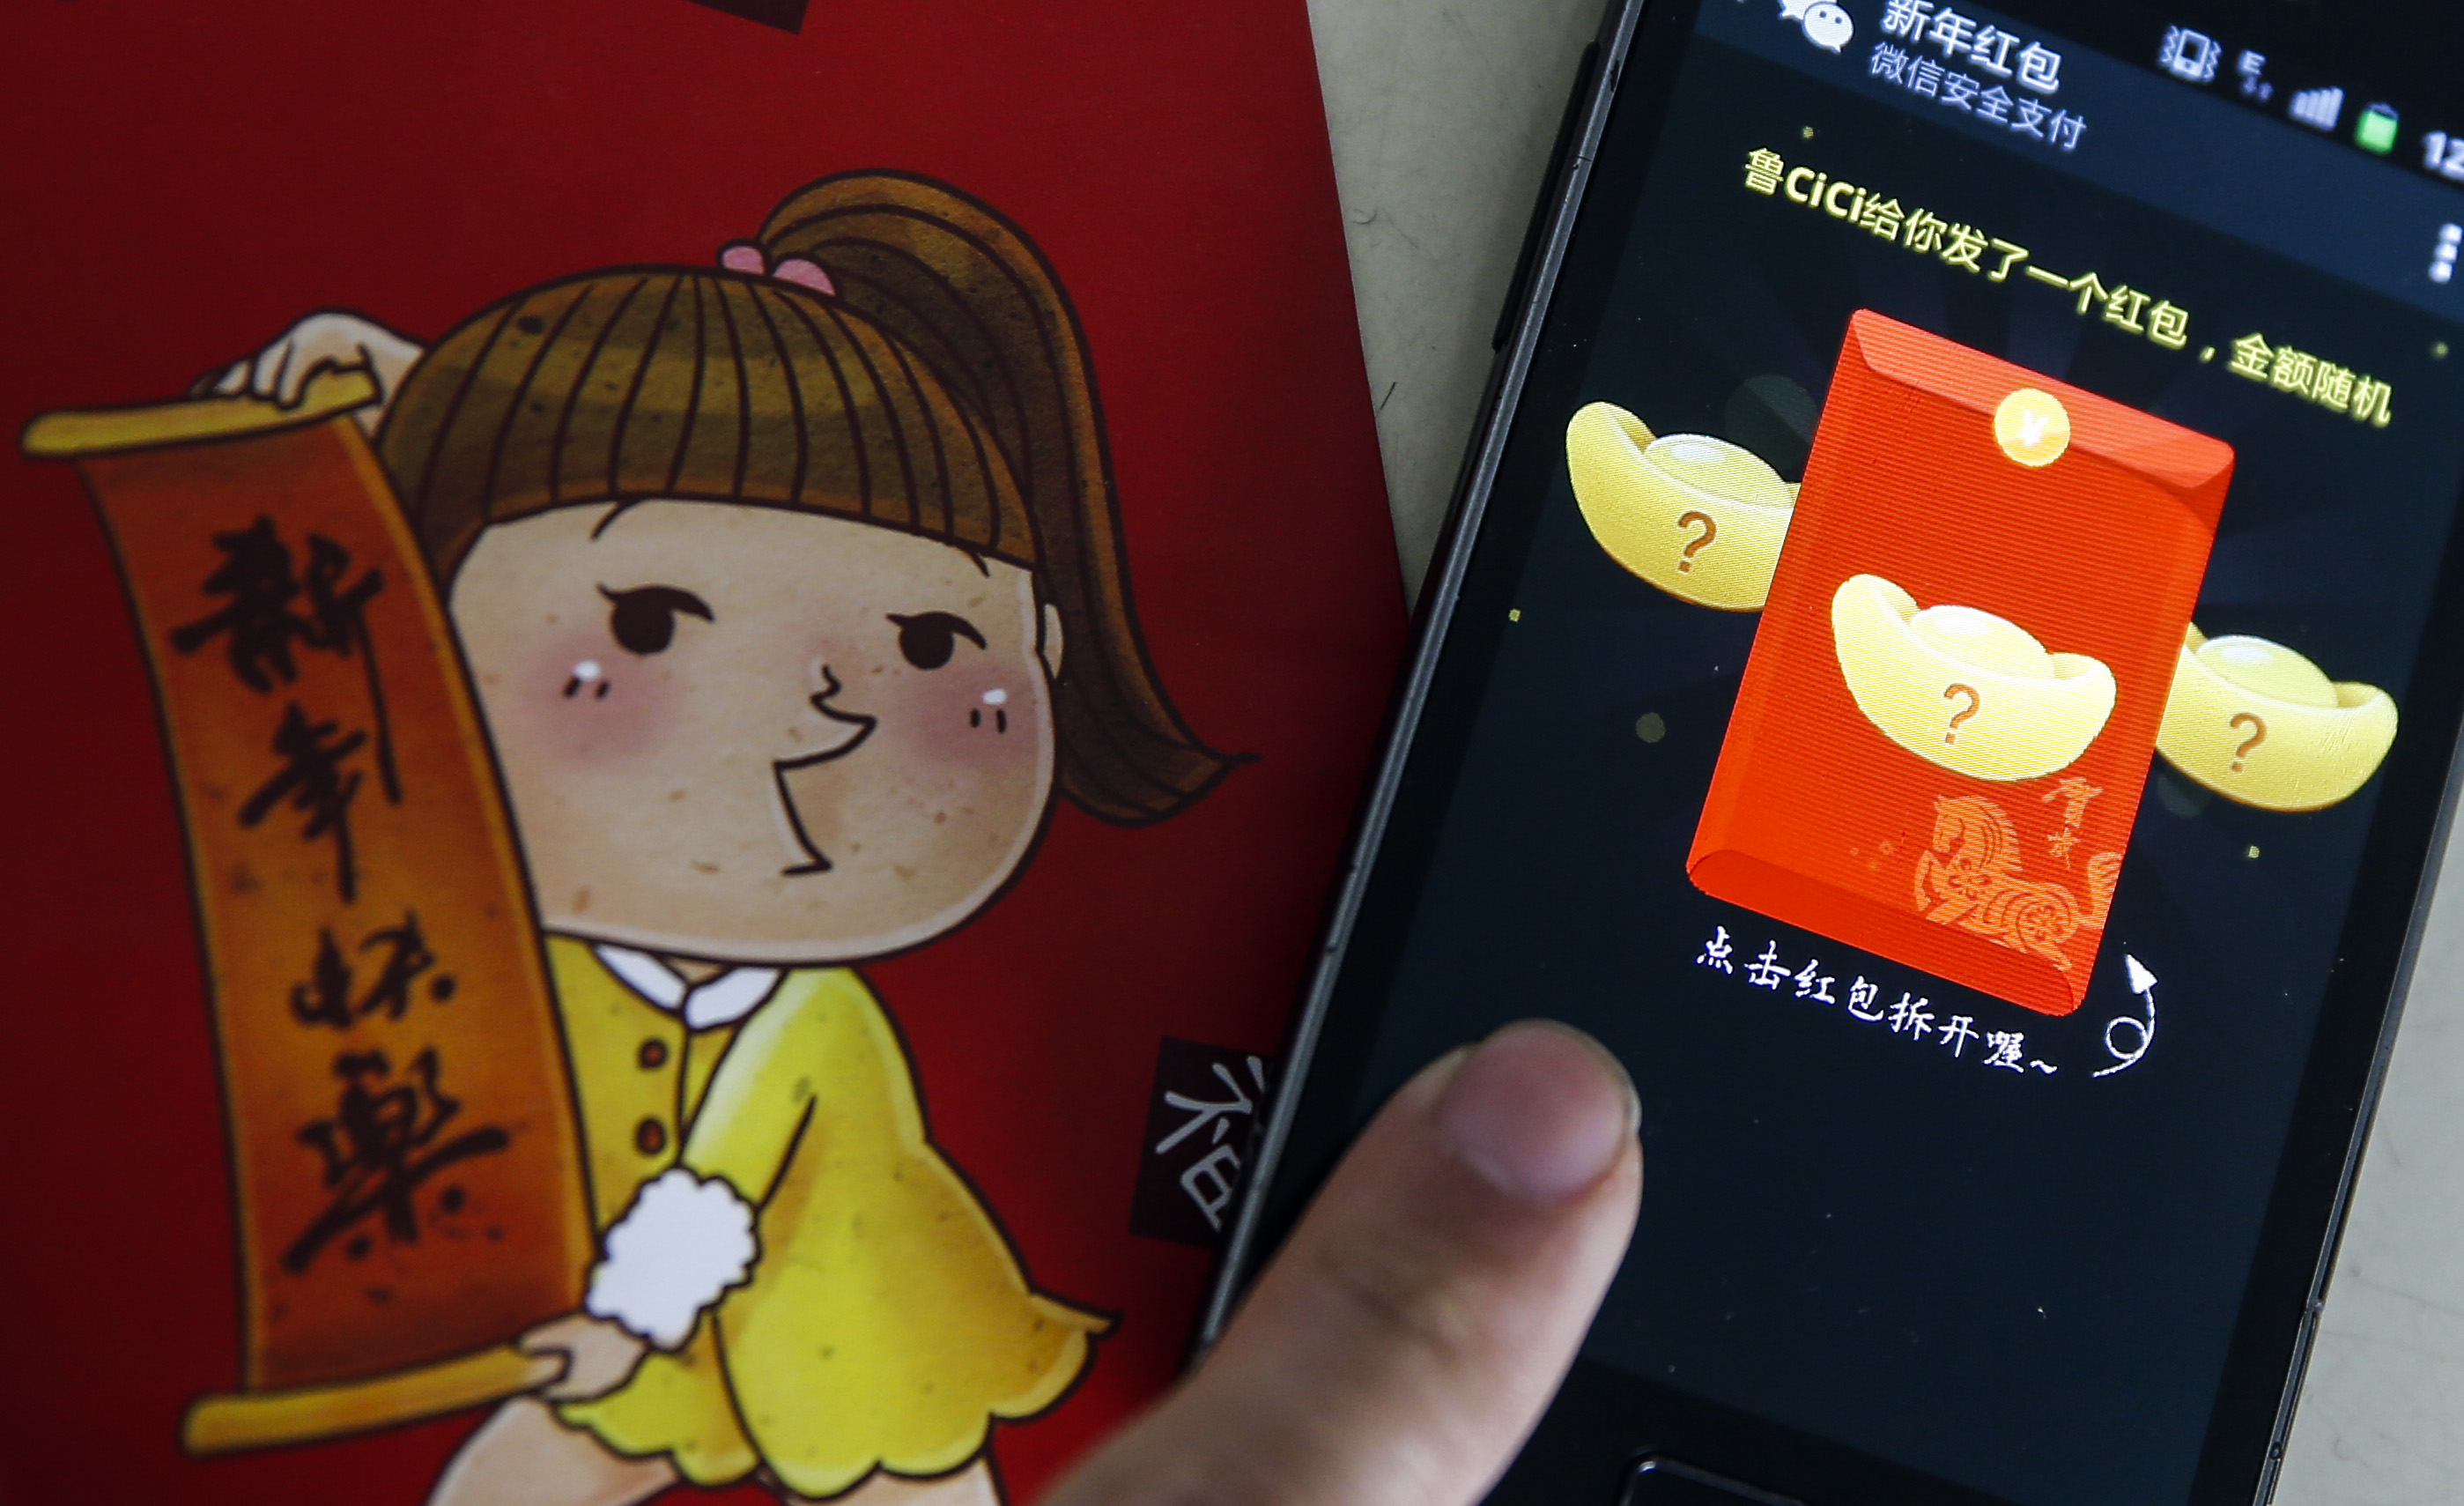 User receiving a red envelope with WeChat digital wallet.